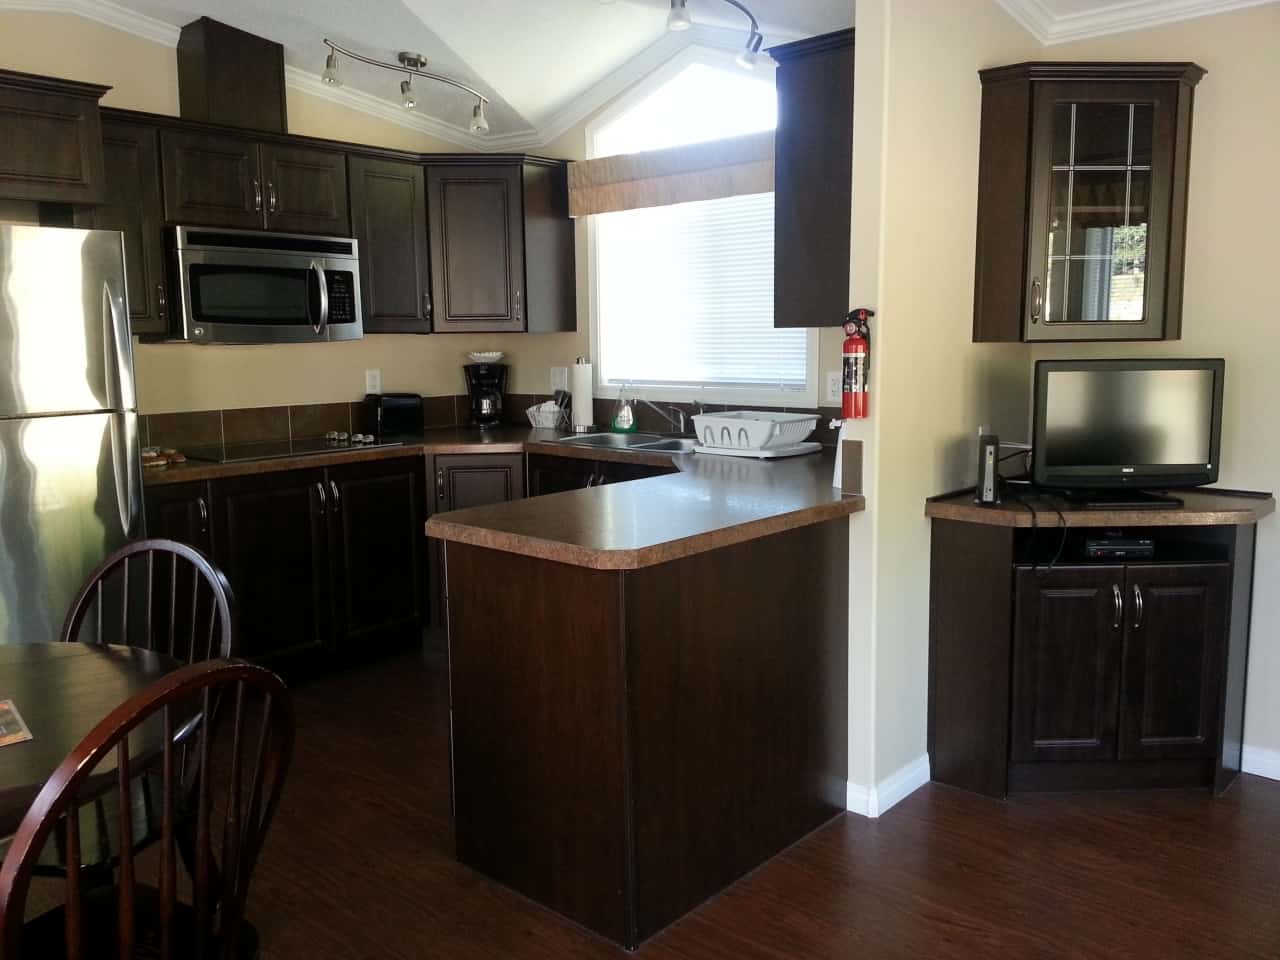 b61f18b2e84ed9e3d71eb399.jpg - Suite 6 Kitchen